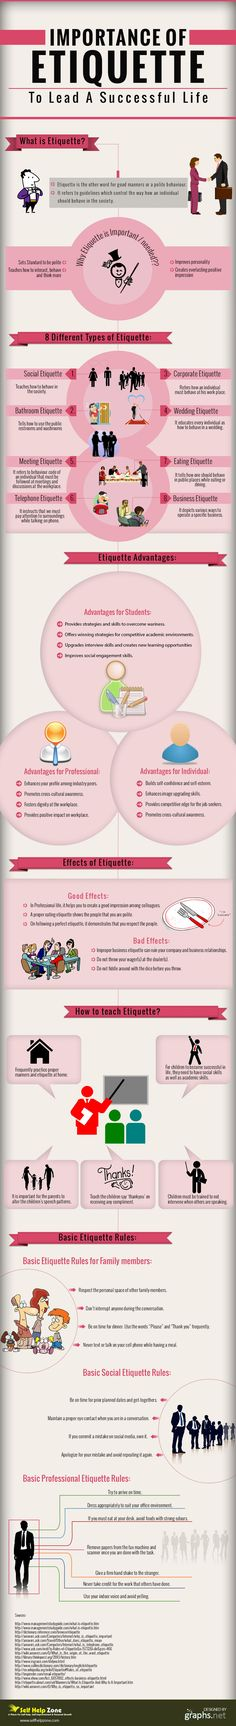 Etiquette makes people to behave in a polite manner. This info graphic provides information on different types and basic rules of etiquette.